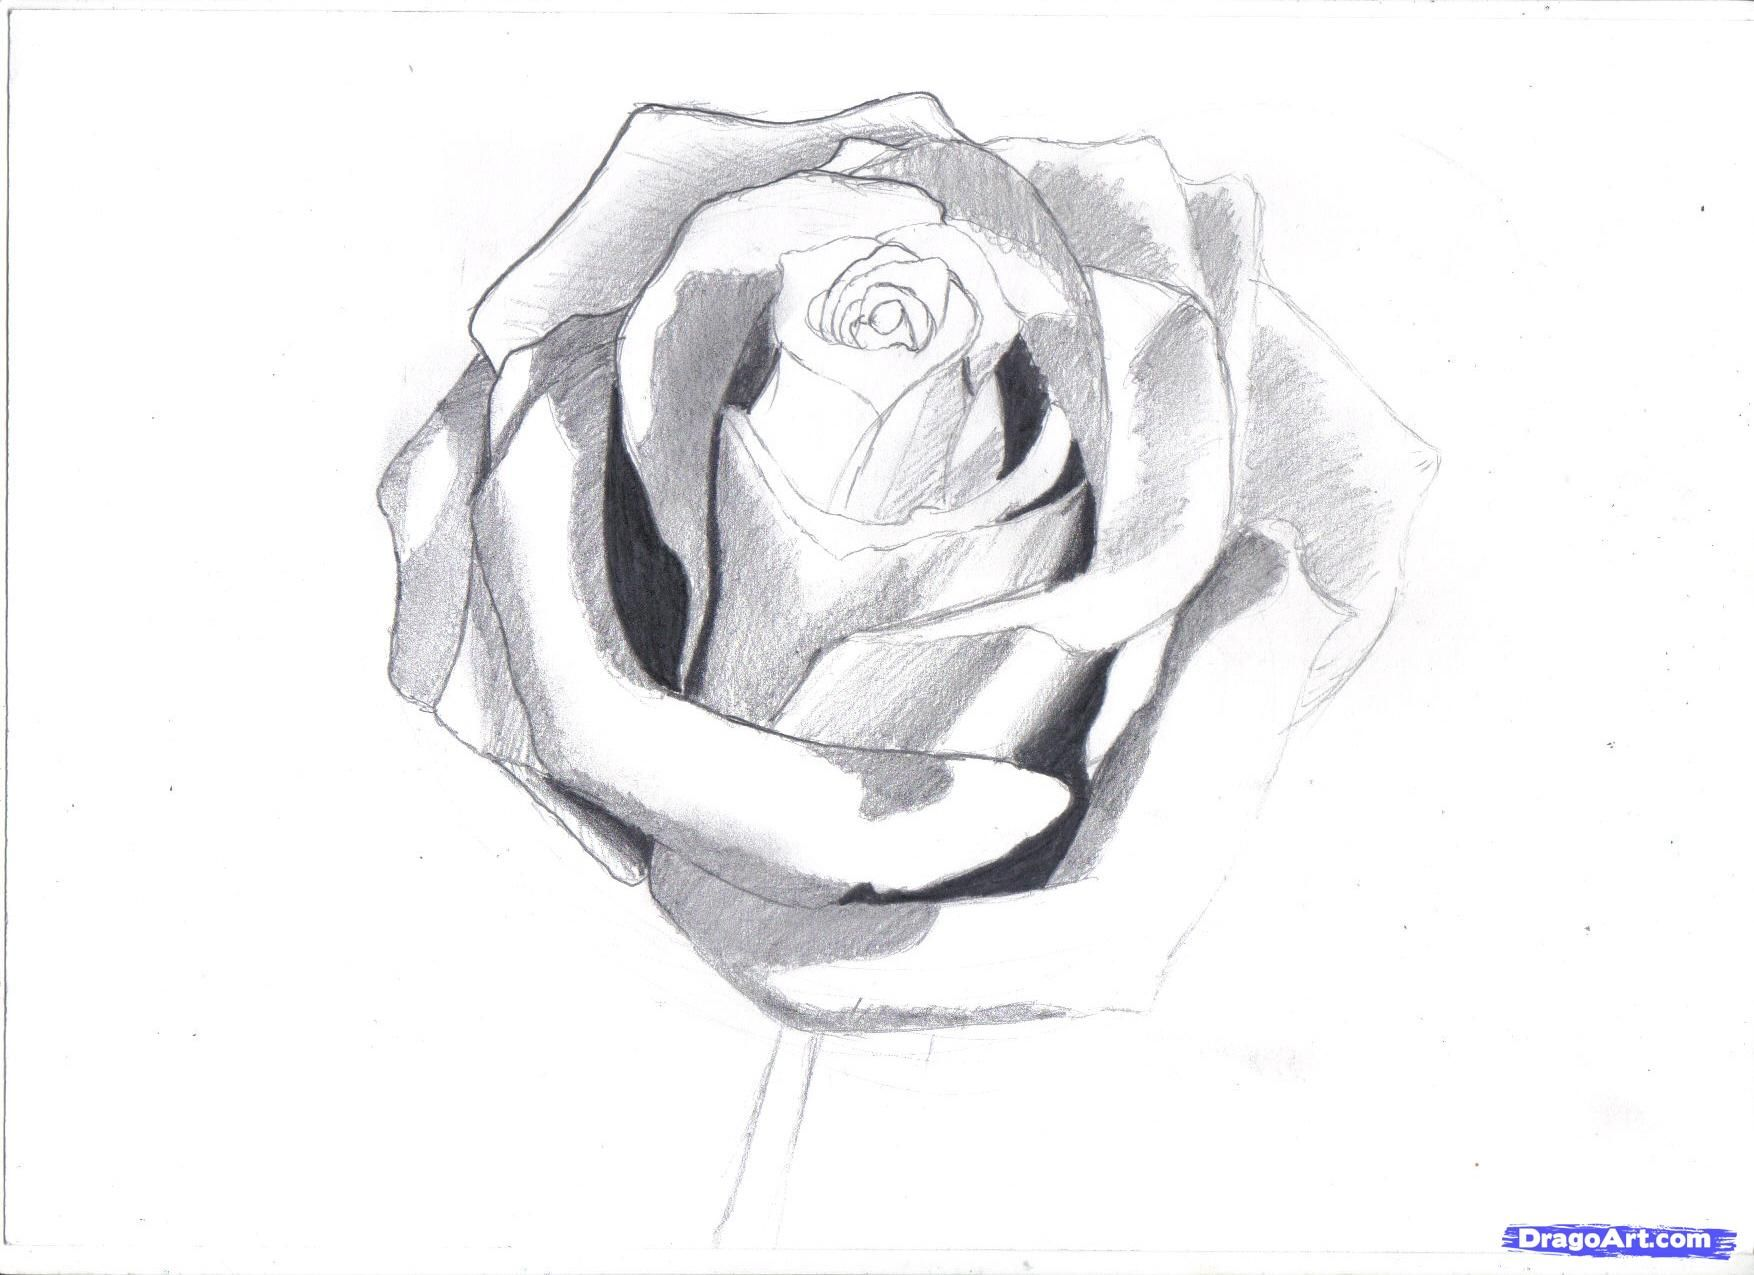 How To Draw A Rose In Pencil, Draw A Realistic Rose Step 6